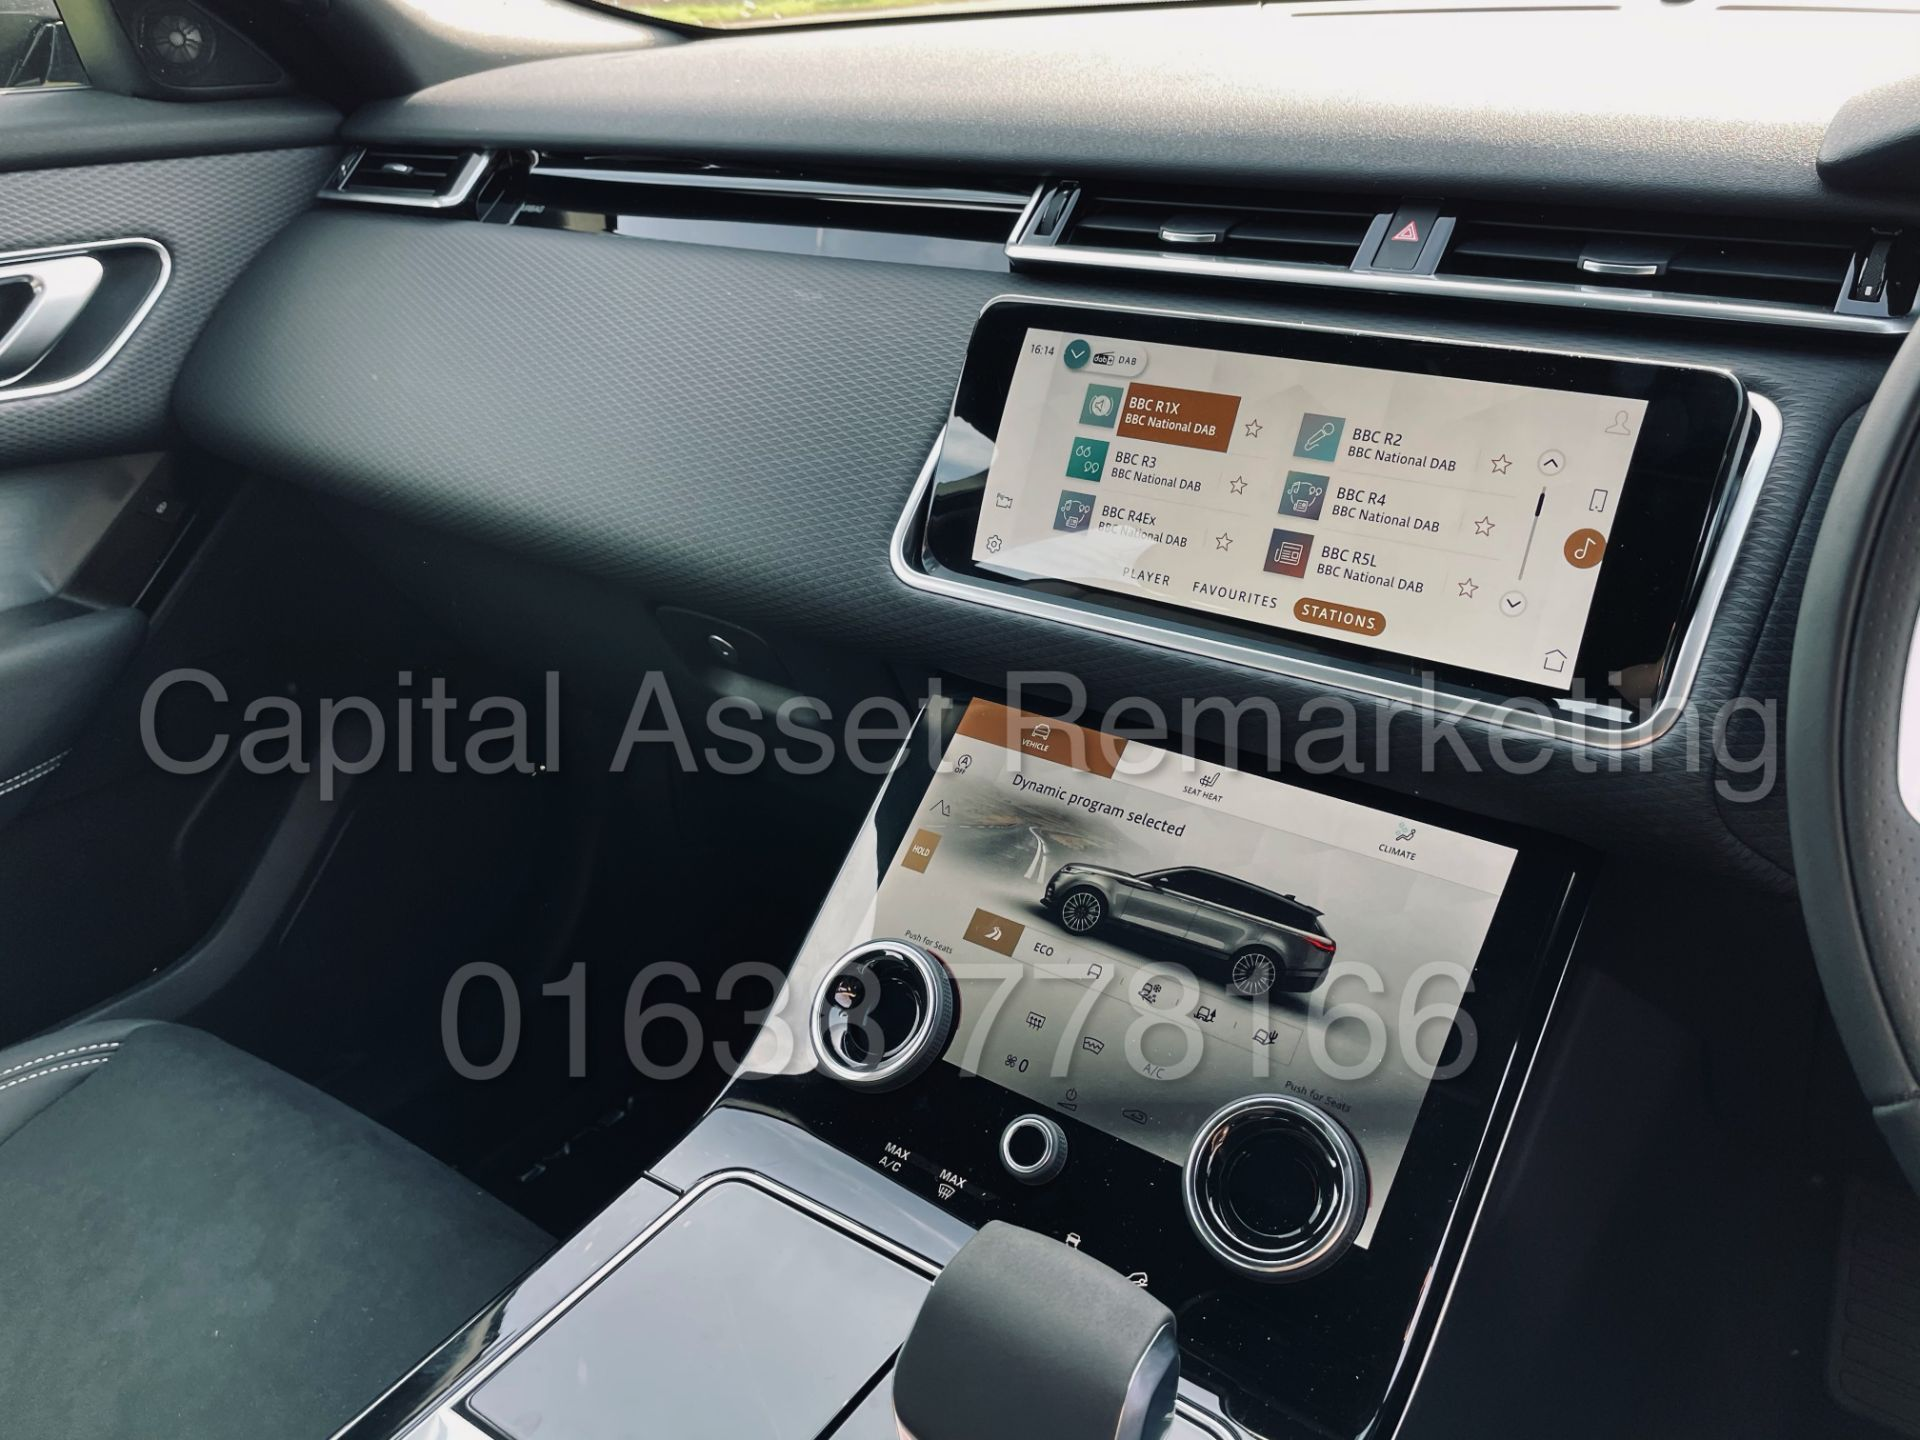 (On Sale) RANGE ROVER VELAR *R-DYNAMIC* SUV (2021) *8 SPEED AUTO - LEATHER* (DELIVERY MILES) - Image 41 of 50